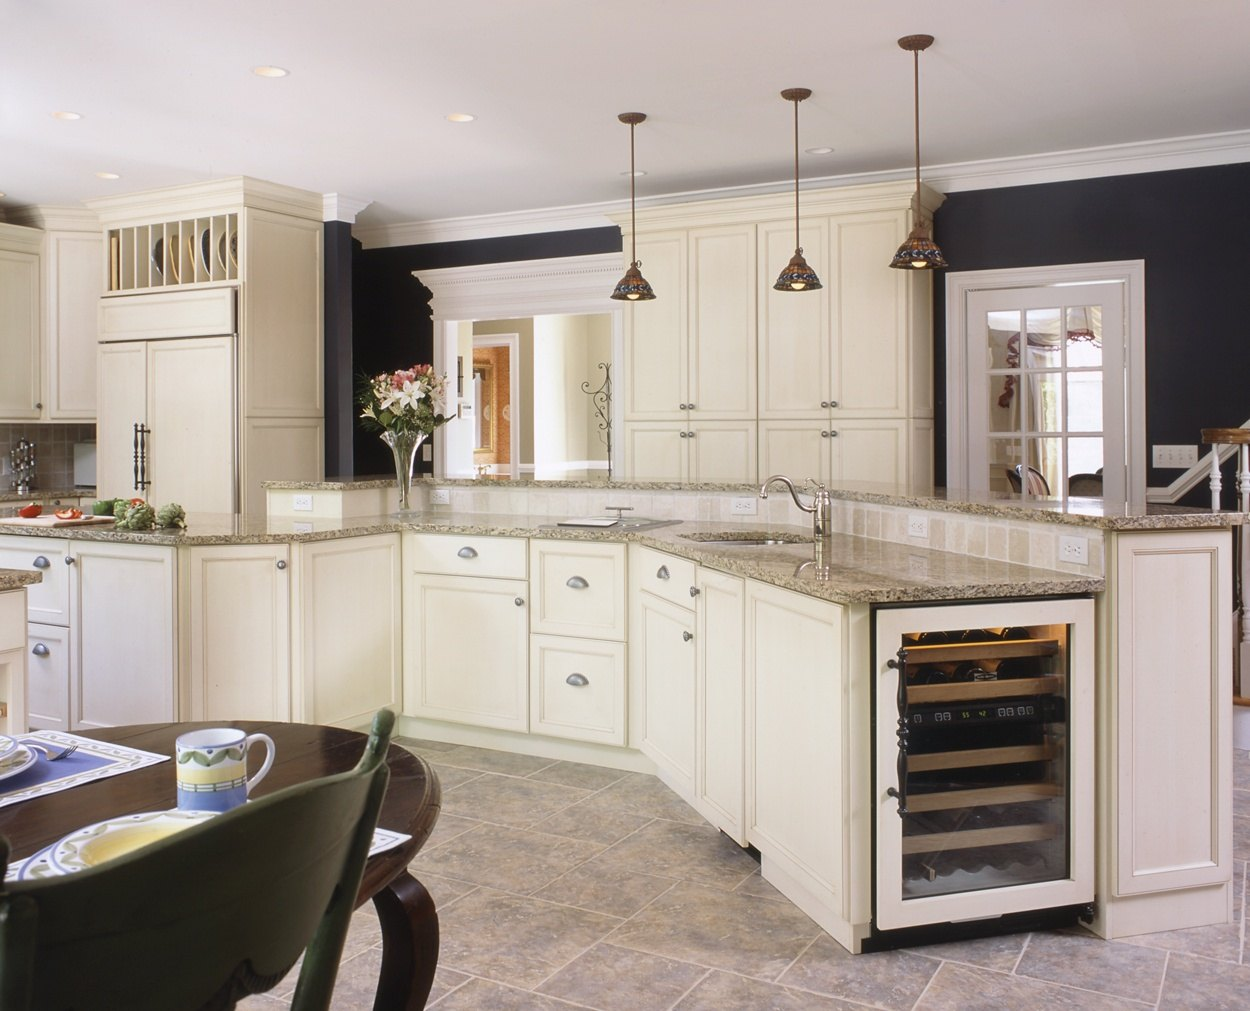 A kitchen for entertaining with a large bi-level island designed by Clark Construction.